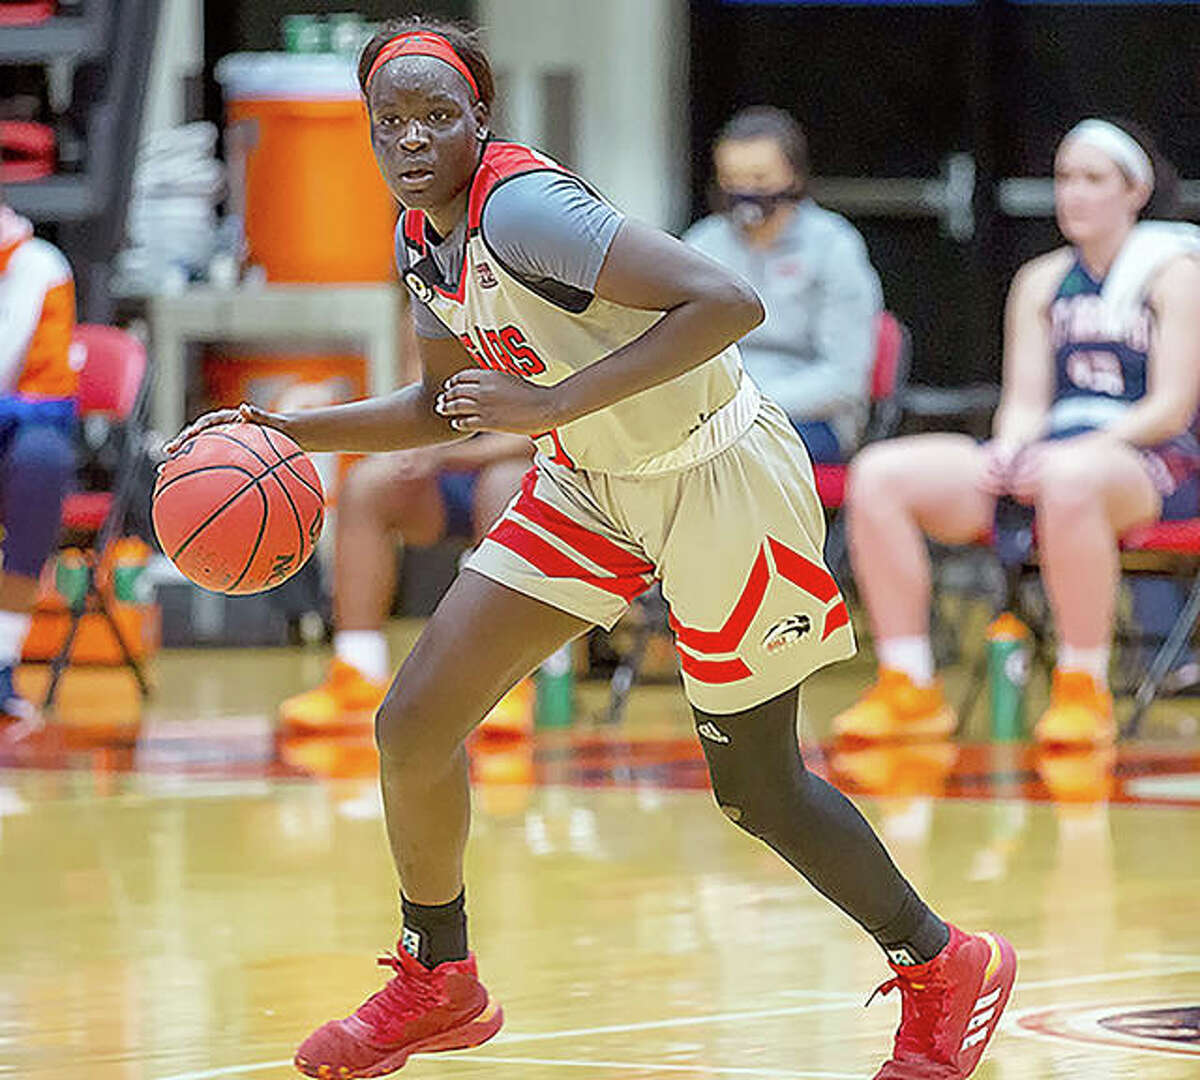 SIUE women's basketball junior Ajulu Thatha from Gambella, Ehiopia, will take part in the 2021 Red Bull USA Basketball 3X Nationals June 12-13.